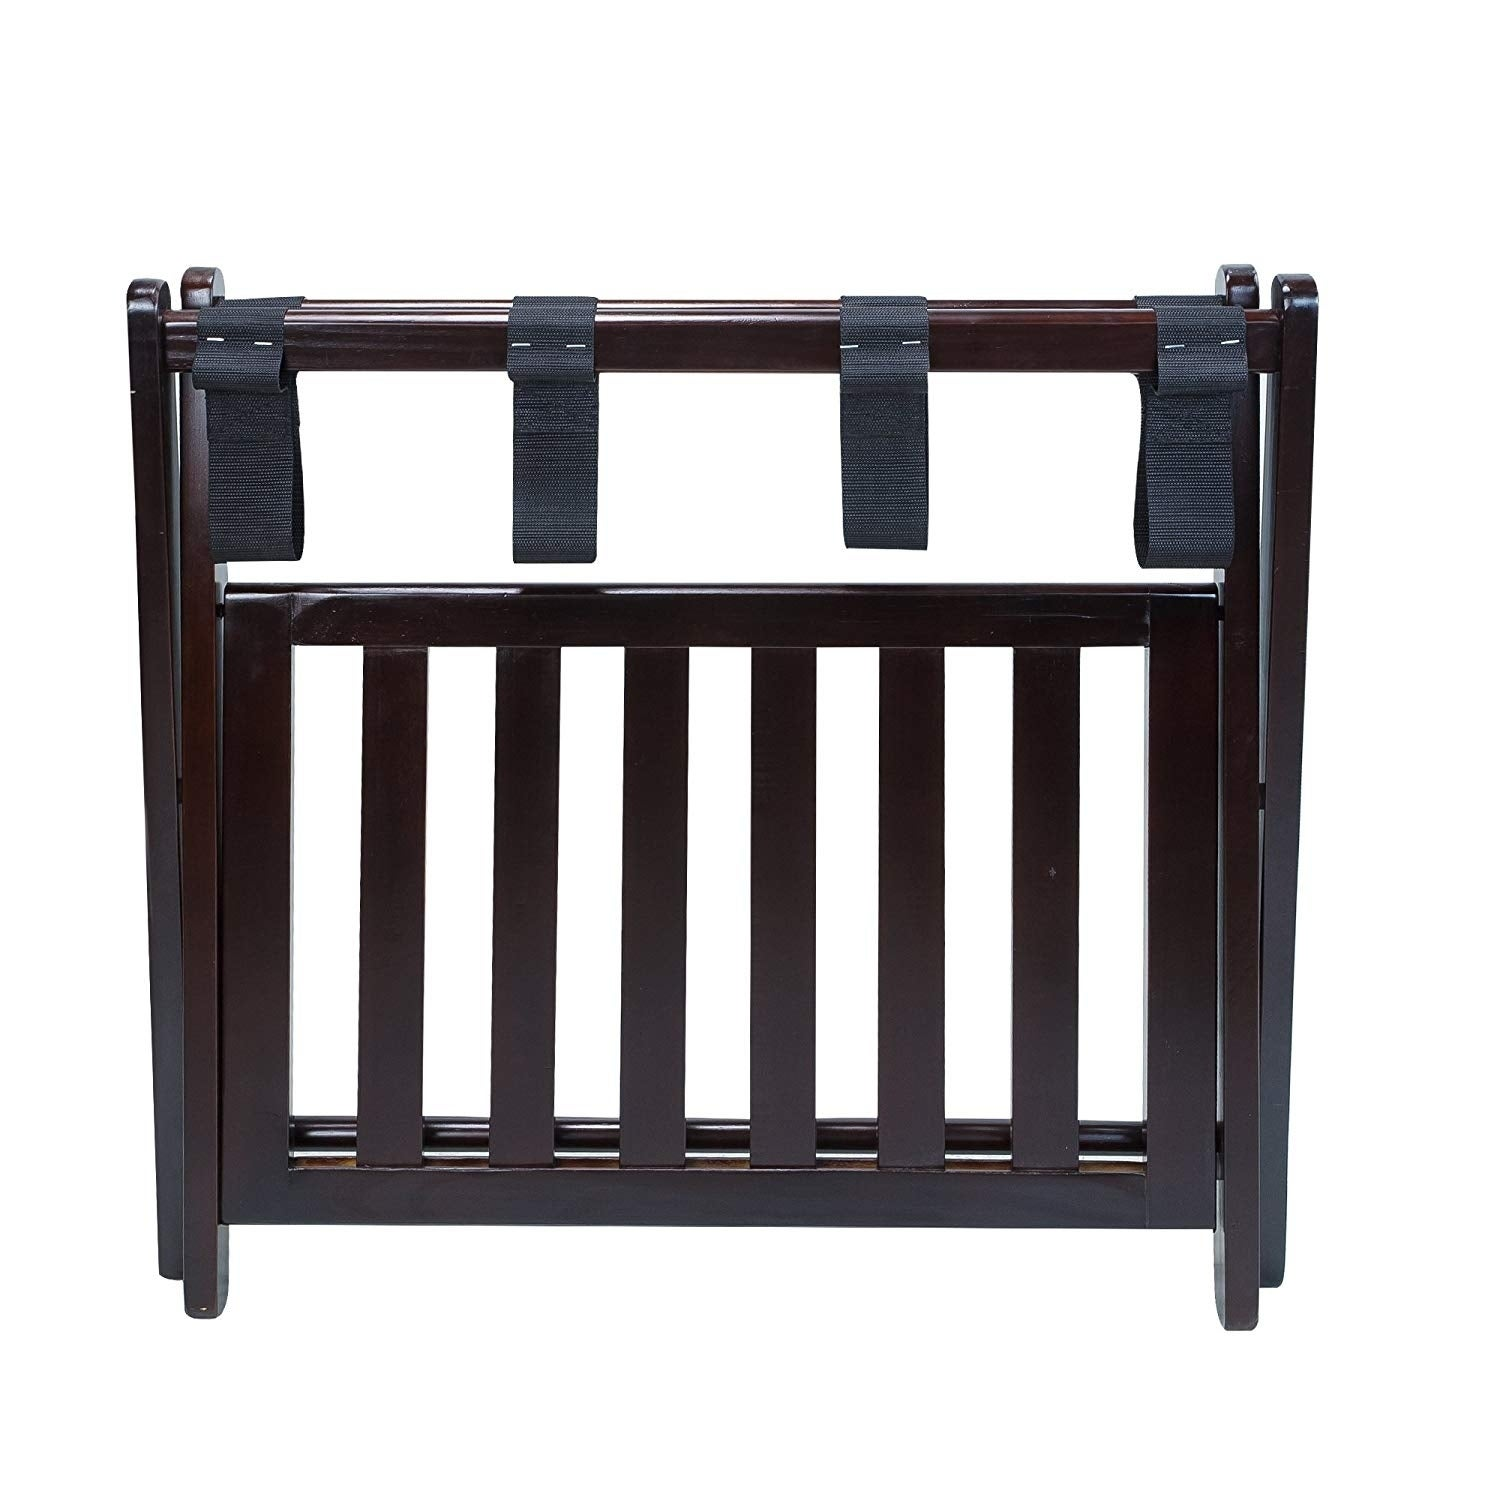 Shop Stony Edge Luggage Rack Suitcase Stand For Guest Room With